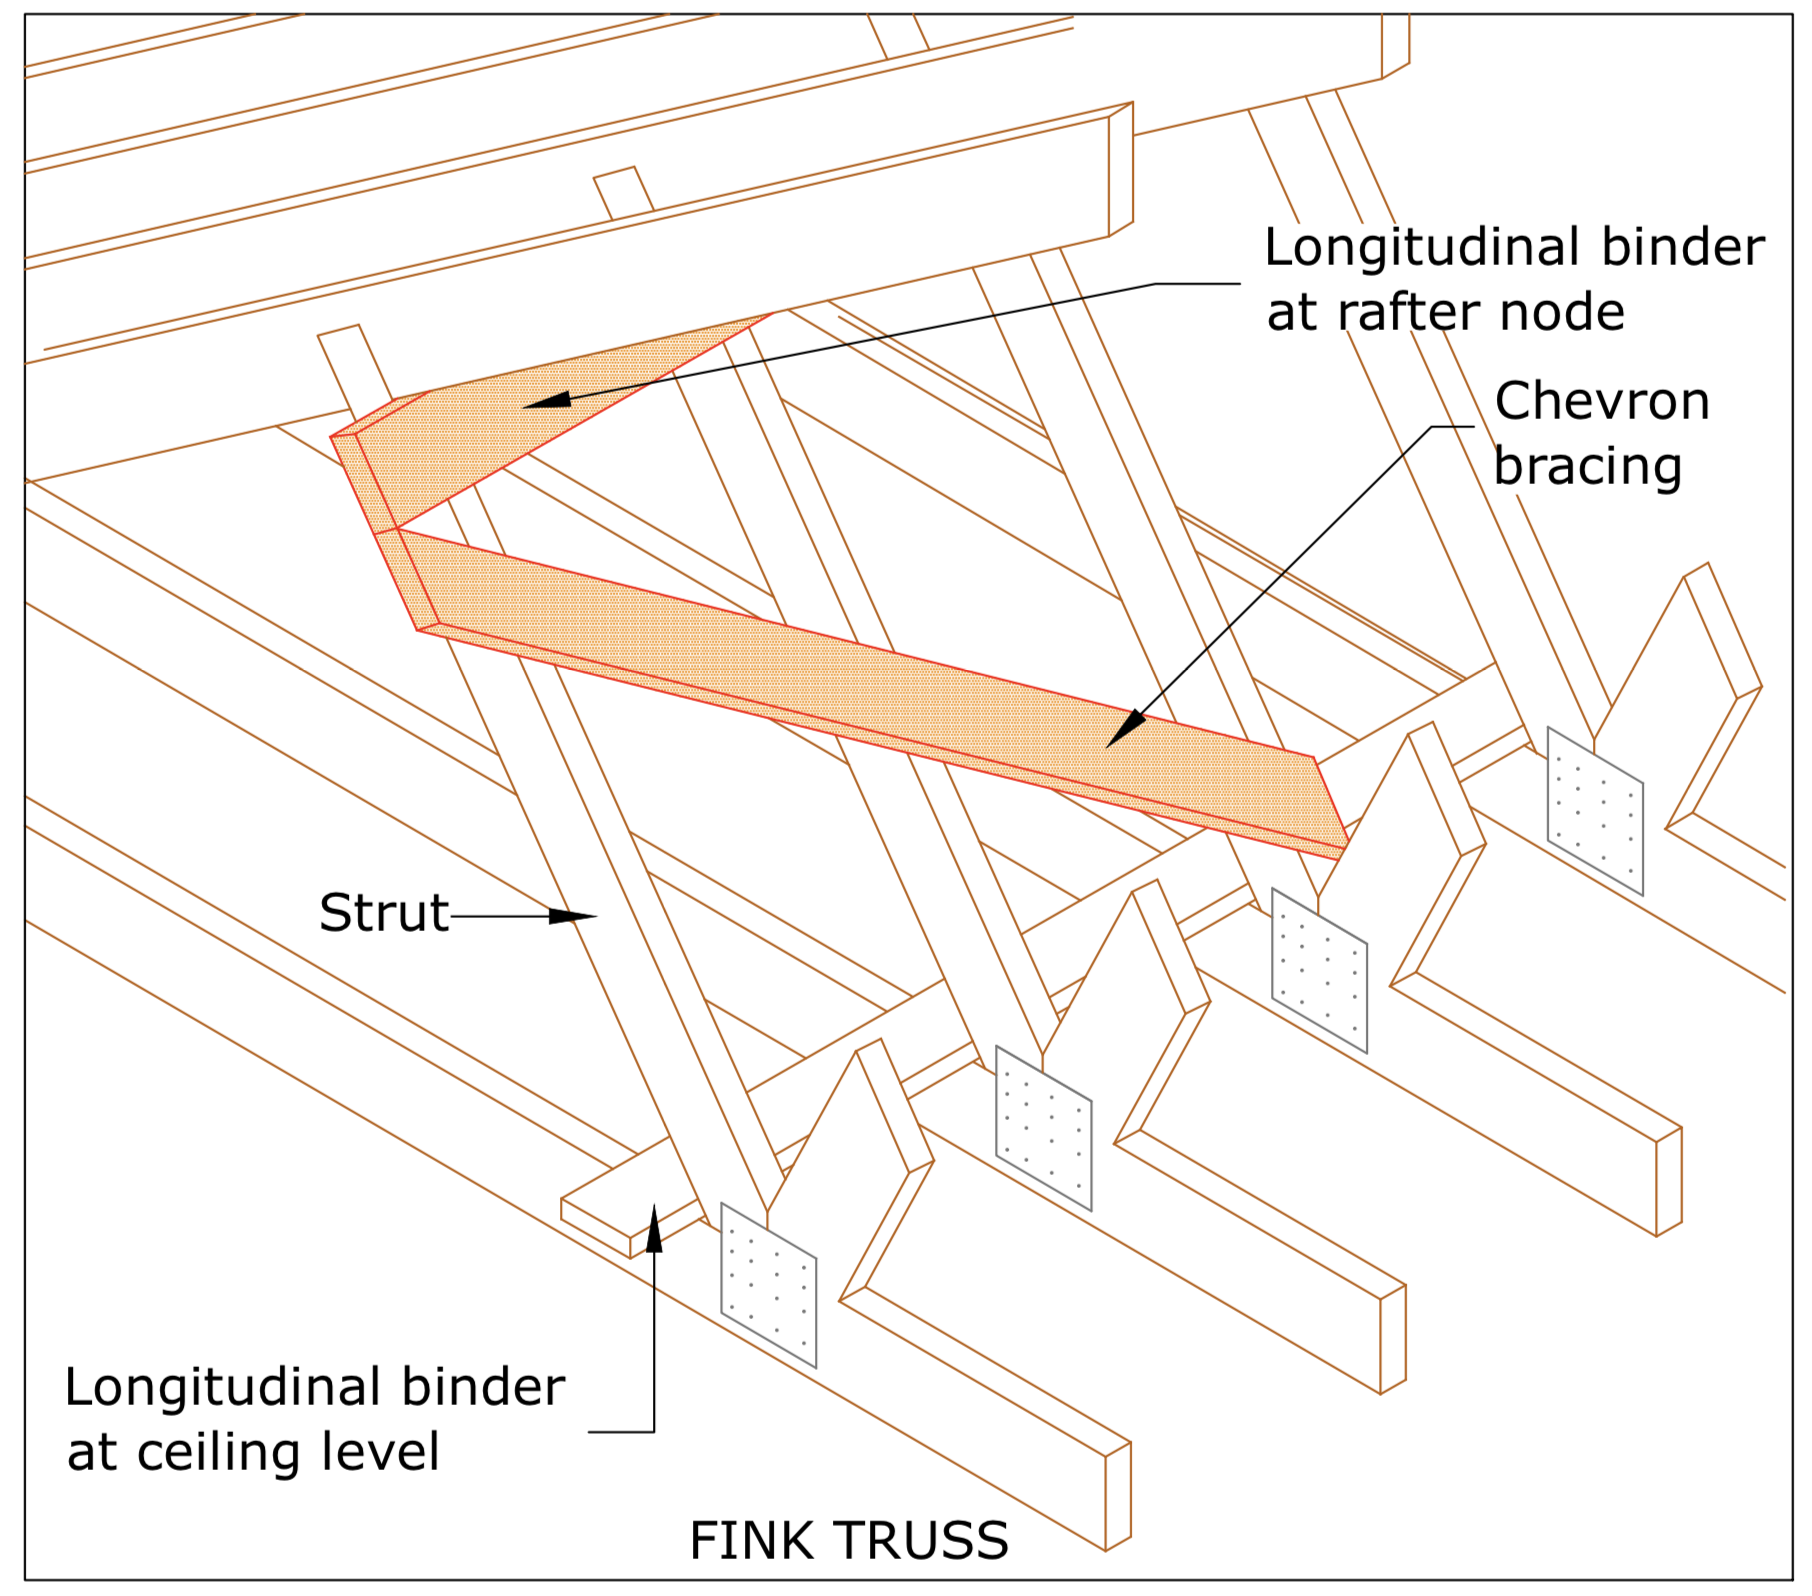 DIAGRAM D9 Chevron Bracing to Internal Strut